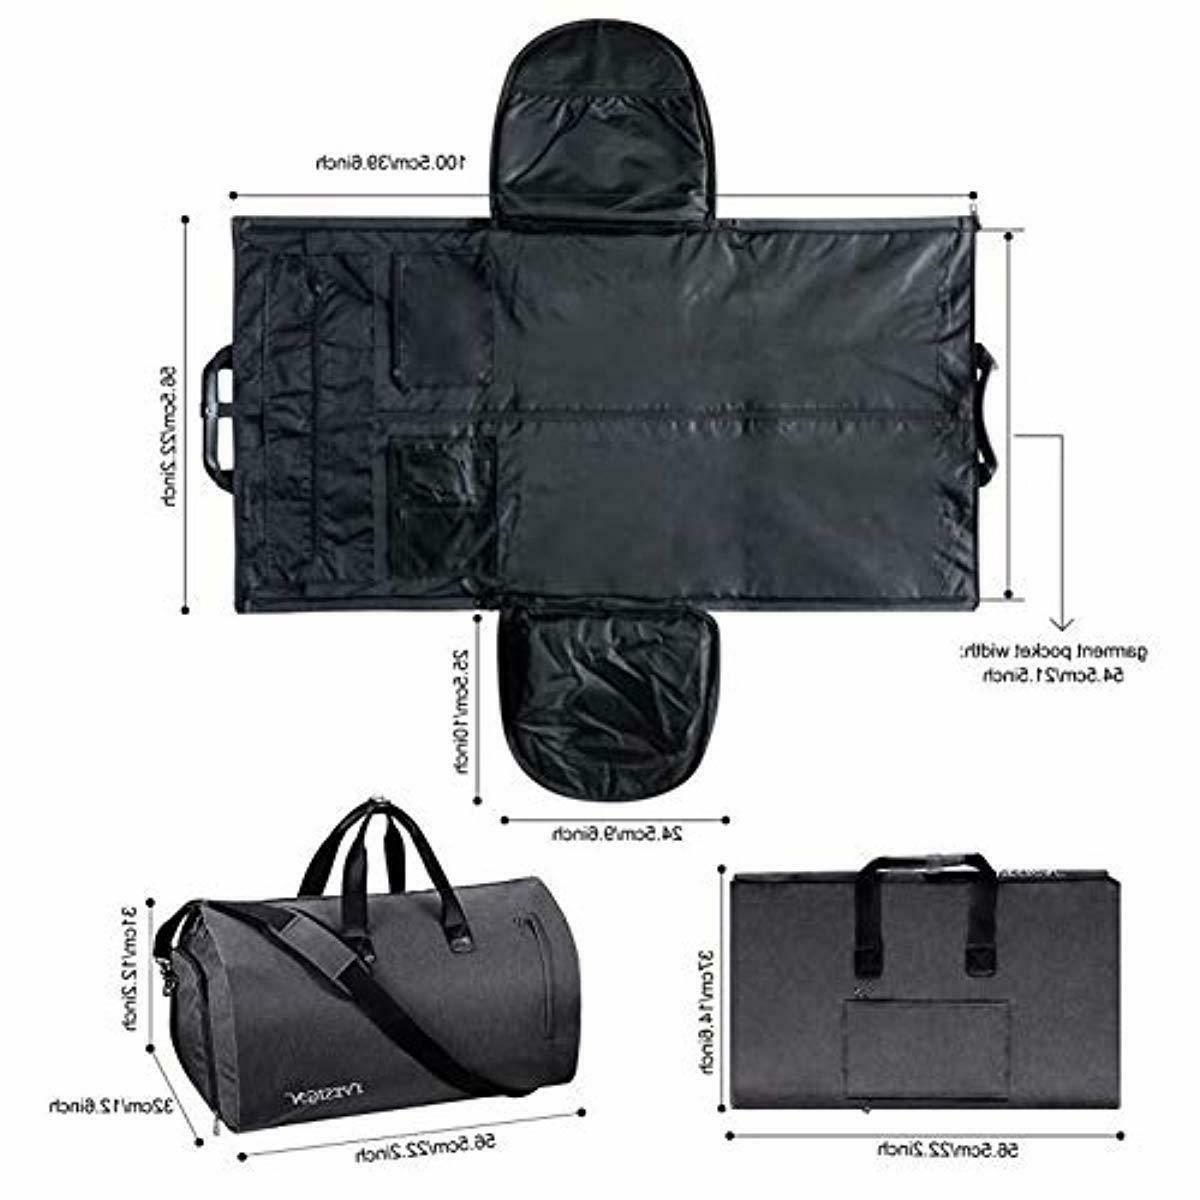 2 1 Carry-on Travel Bag Convertible Suit Duffle Bag Shoes Compartment